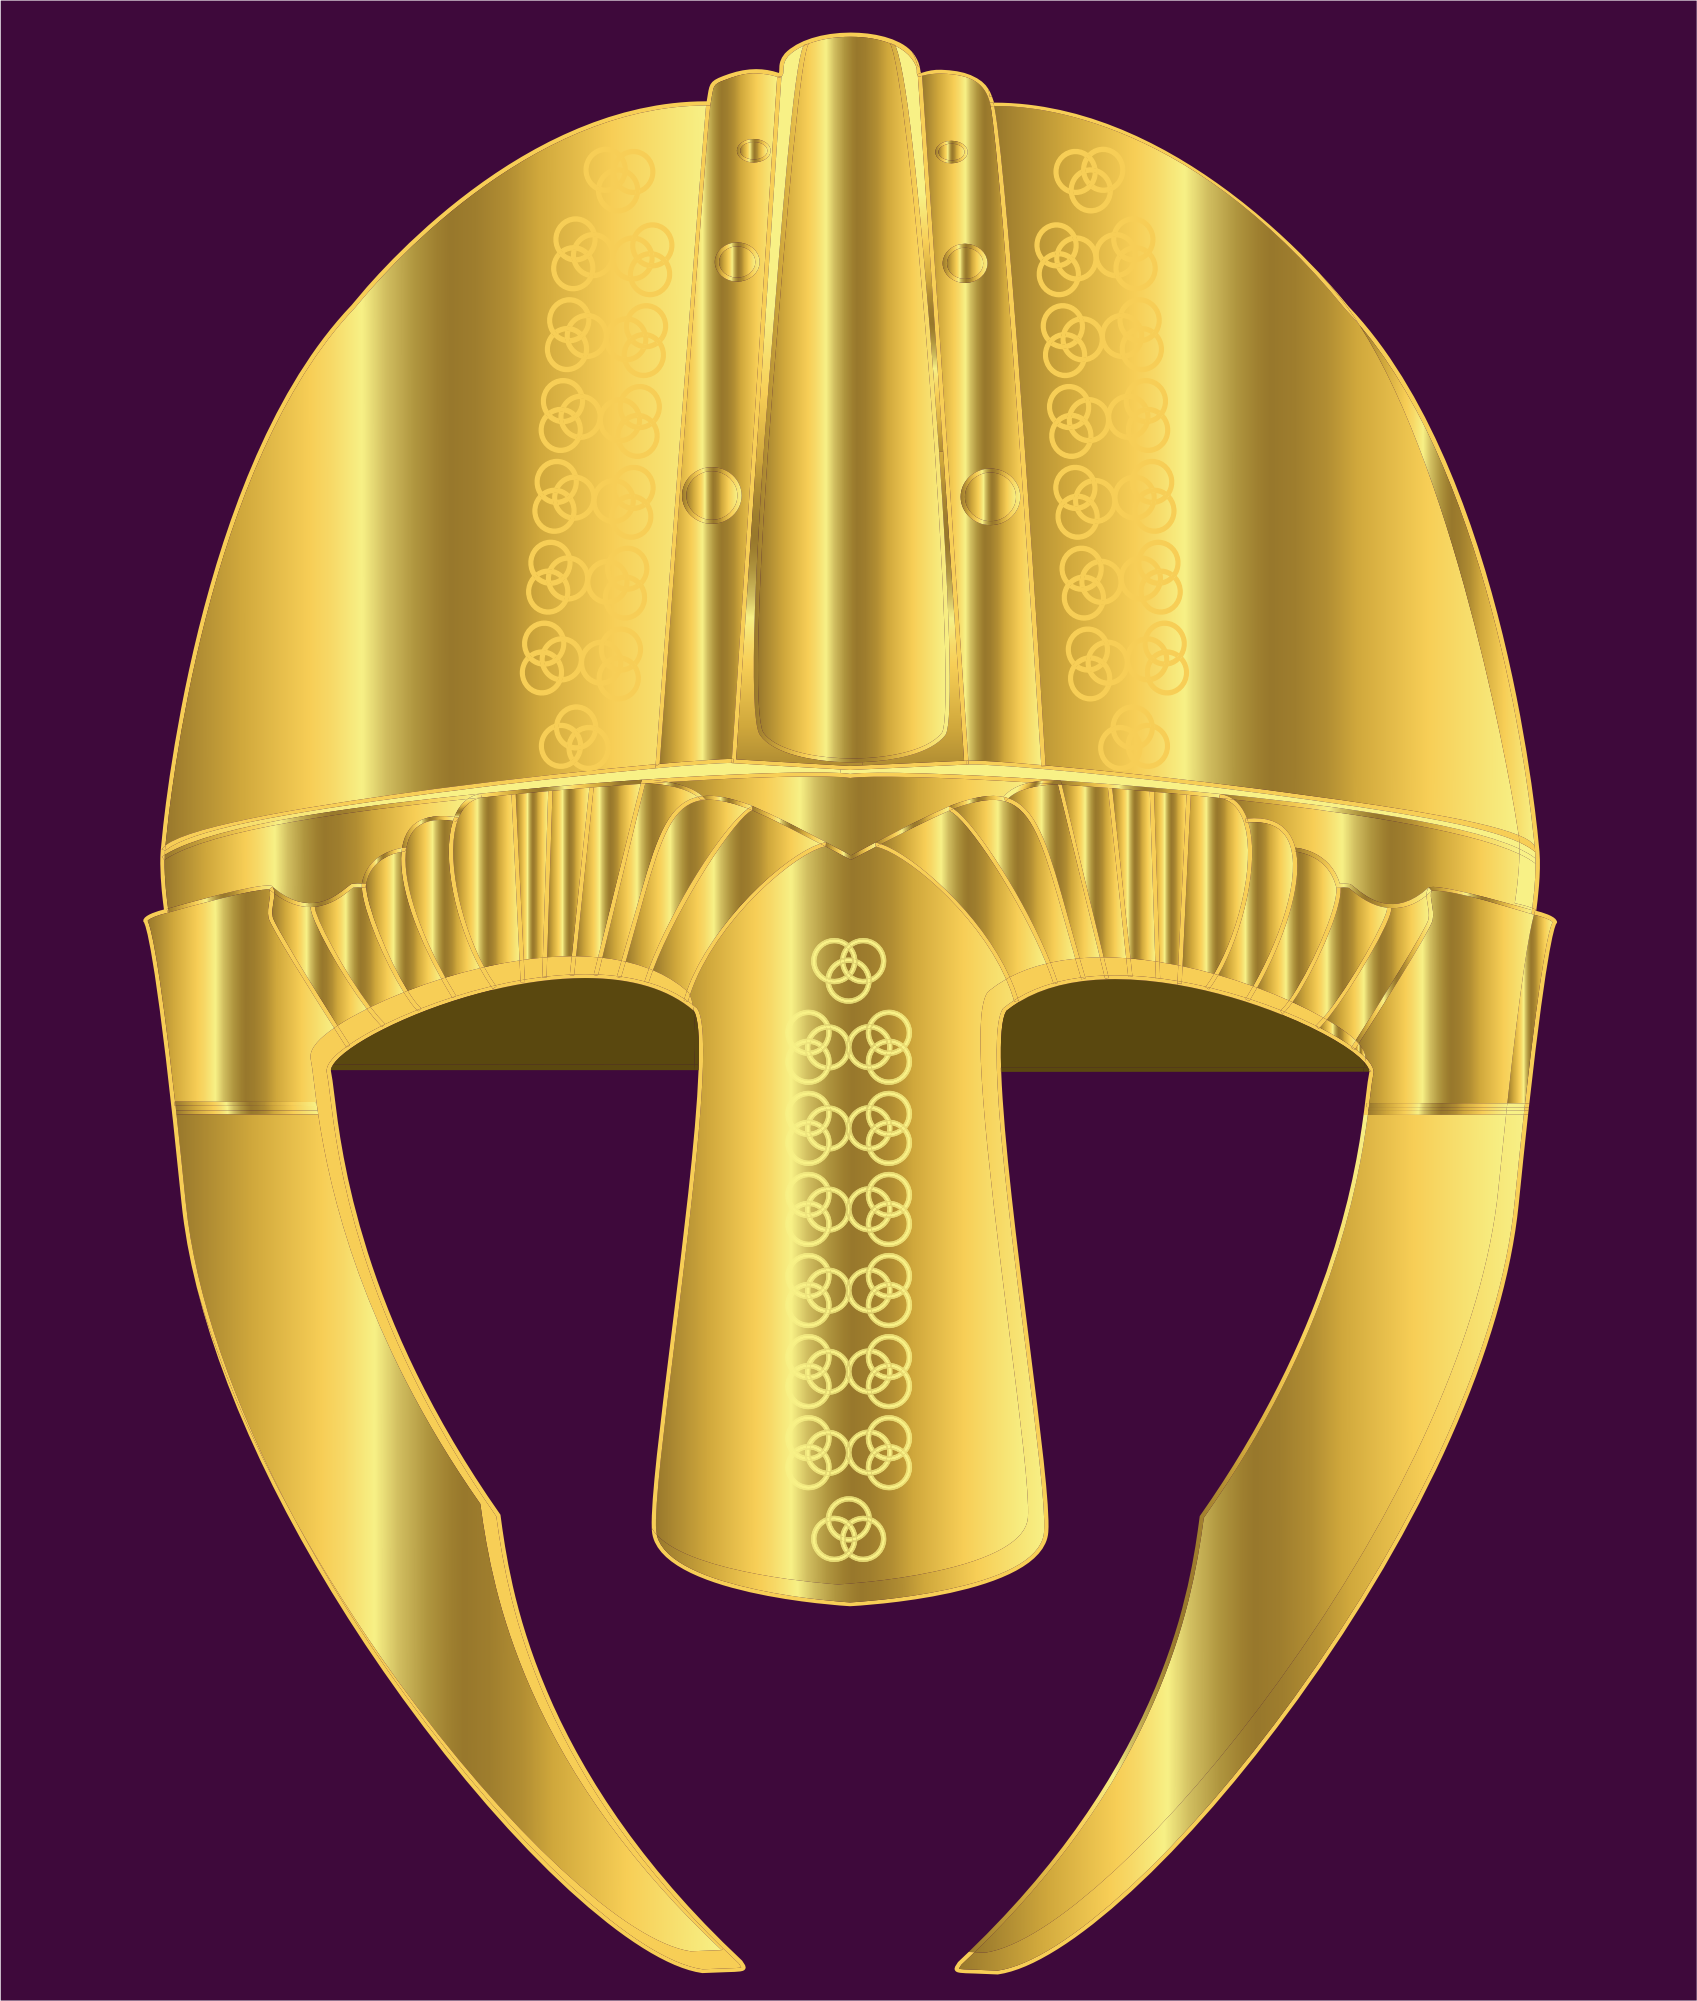 Helmet of gold with Celtic decoration by Fractalbee